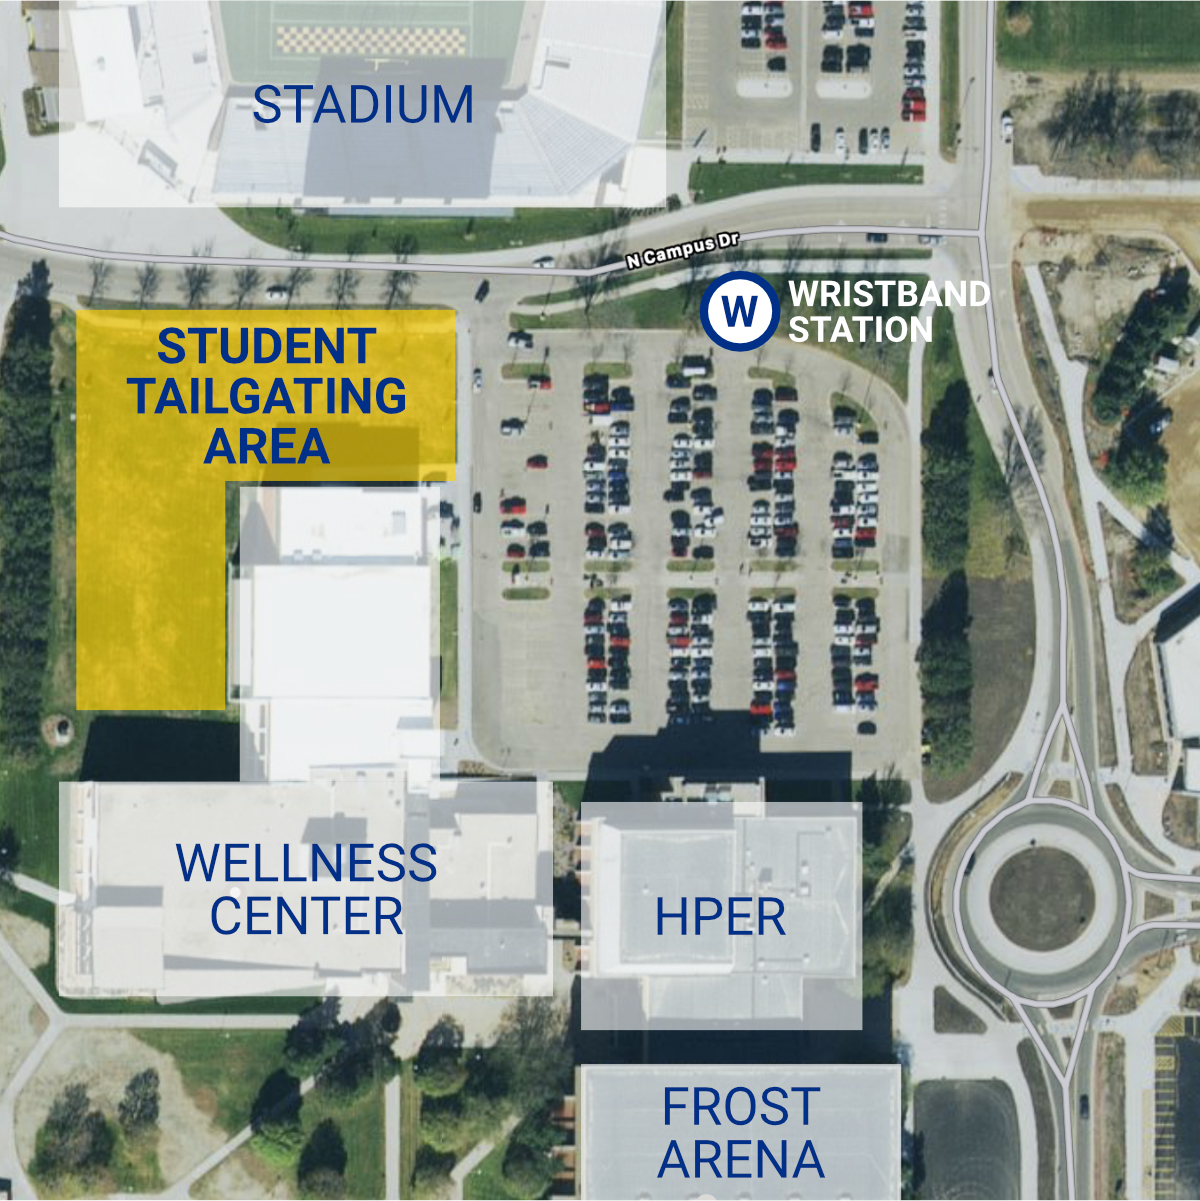 Map of the student tailgating area for SDSU Jackrabbits home football games